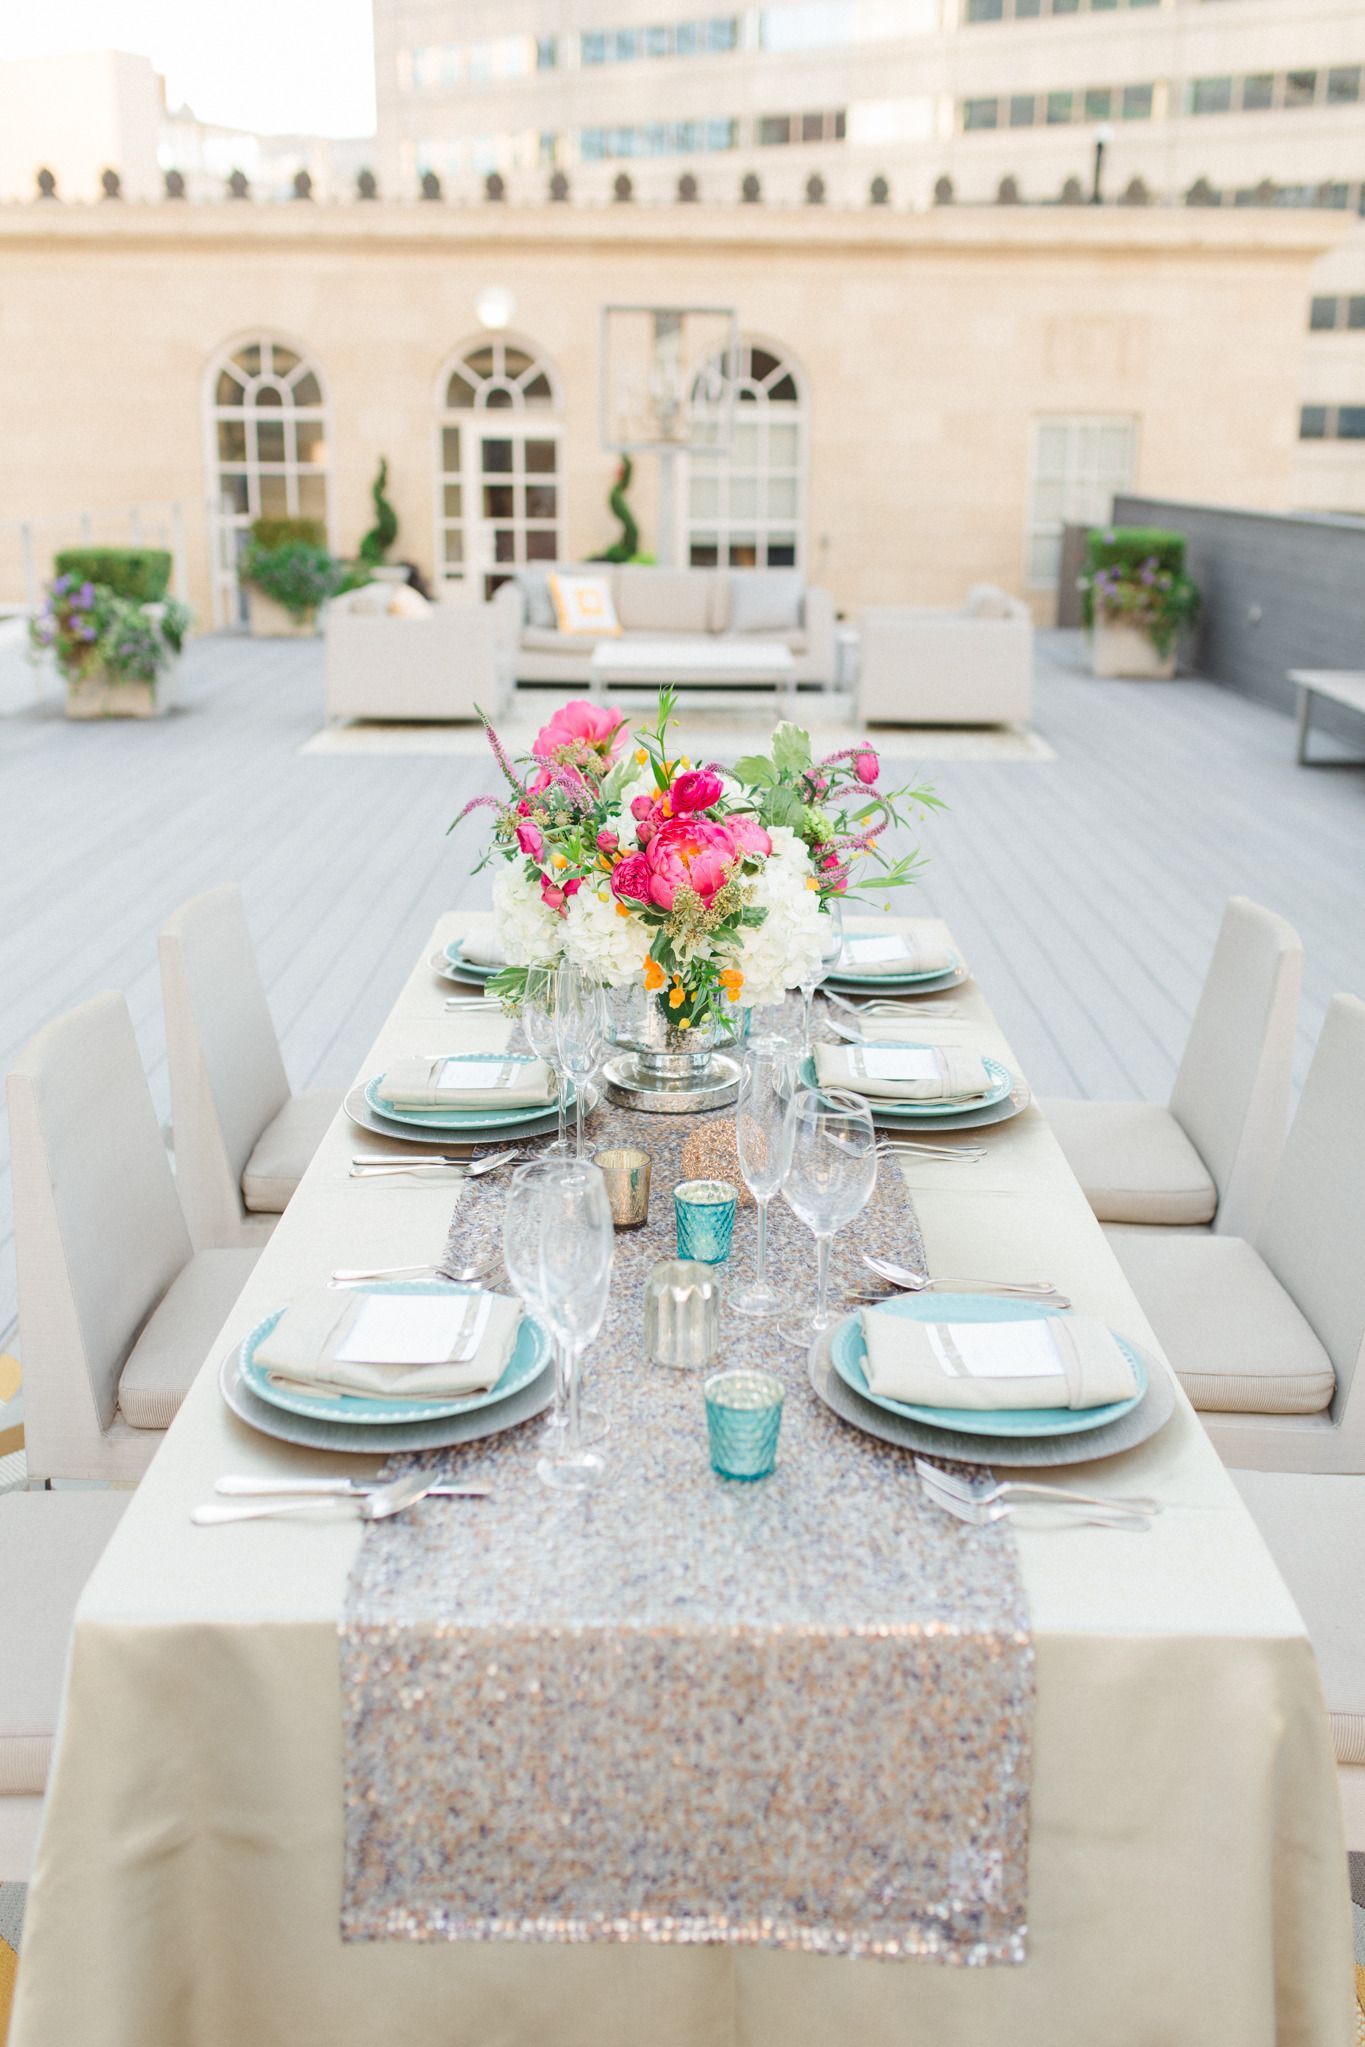 The Venue At 400 North Ervay Inspiration Shoot | Floral centerpieces ...